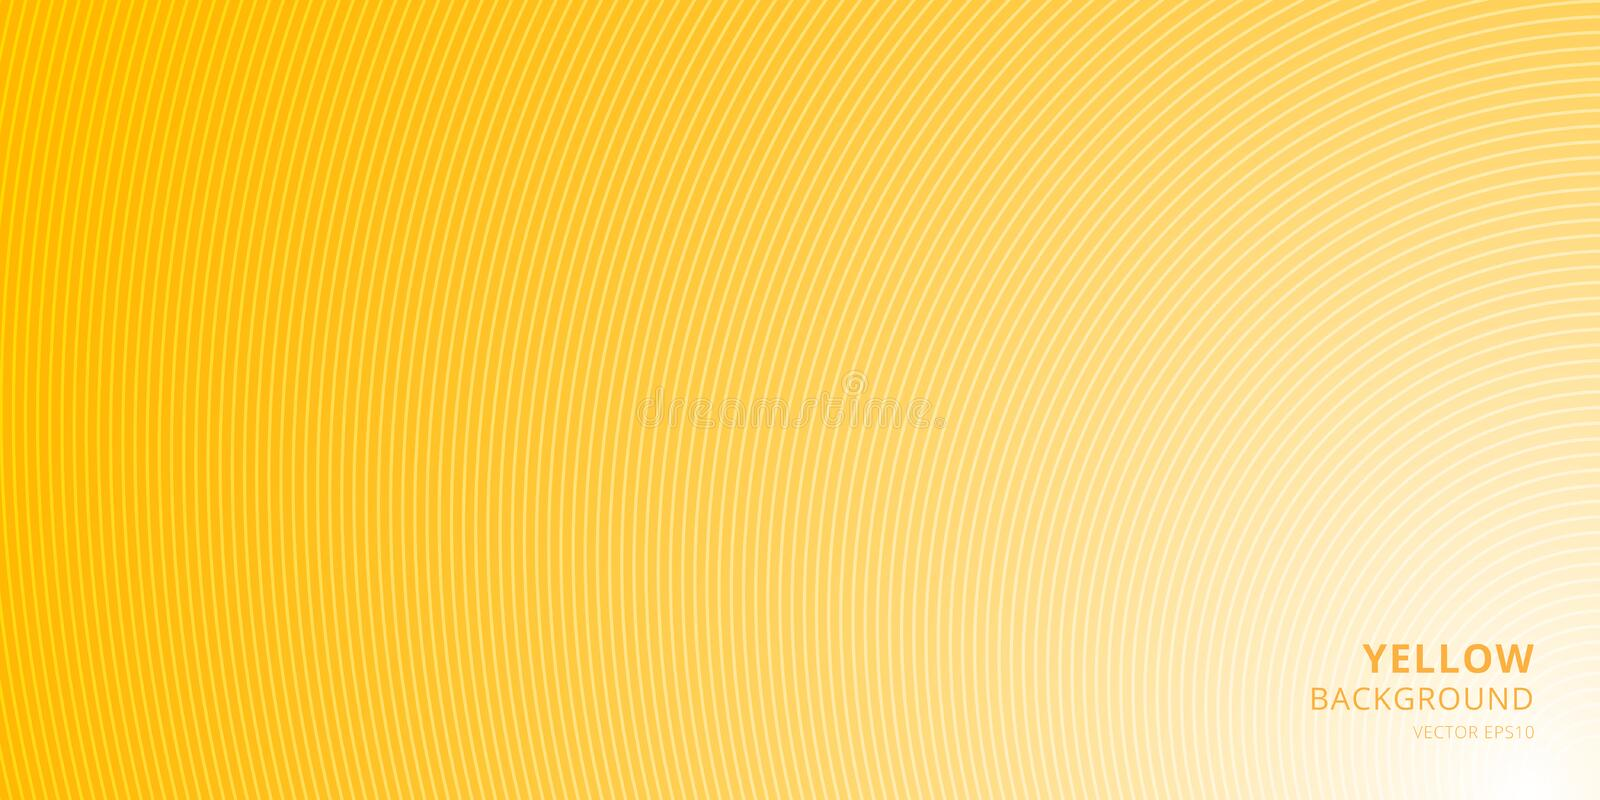 Smooth light yellow background with curved lines pattern texture with place for text. You can use cover brochure, card, banner web vector illustration